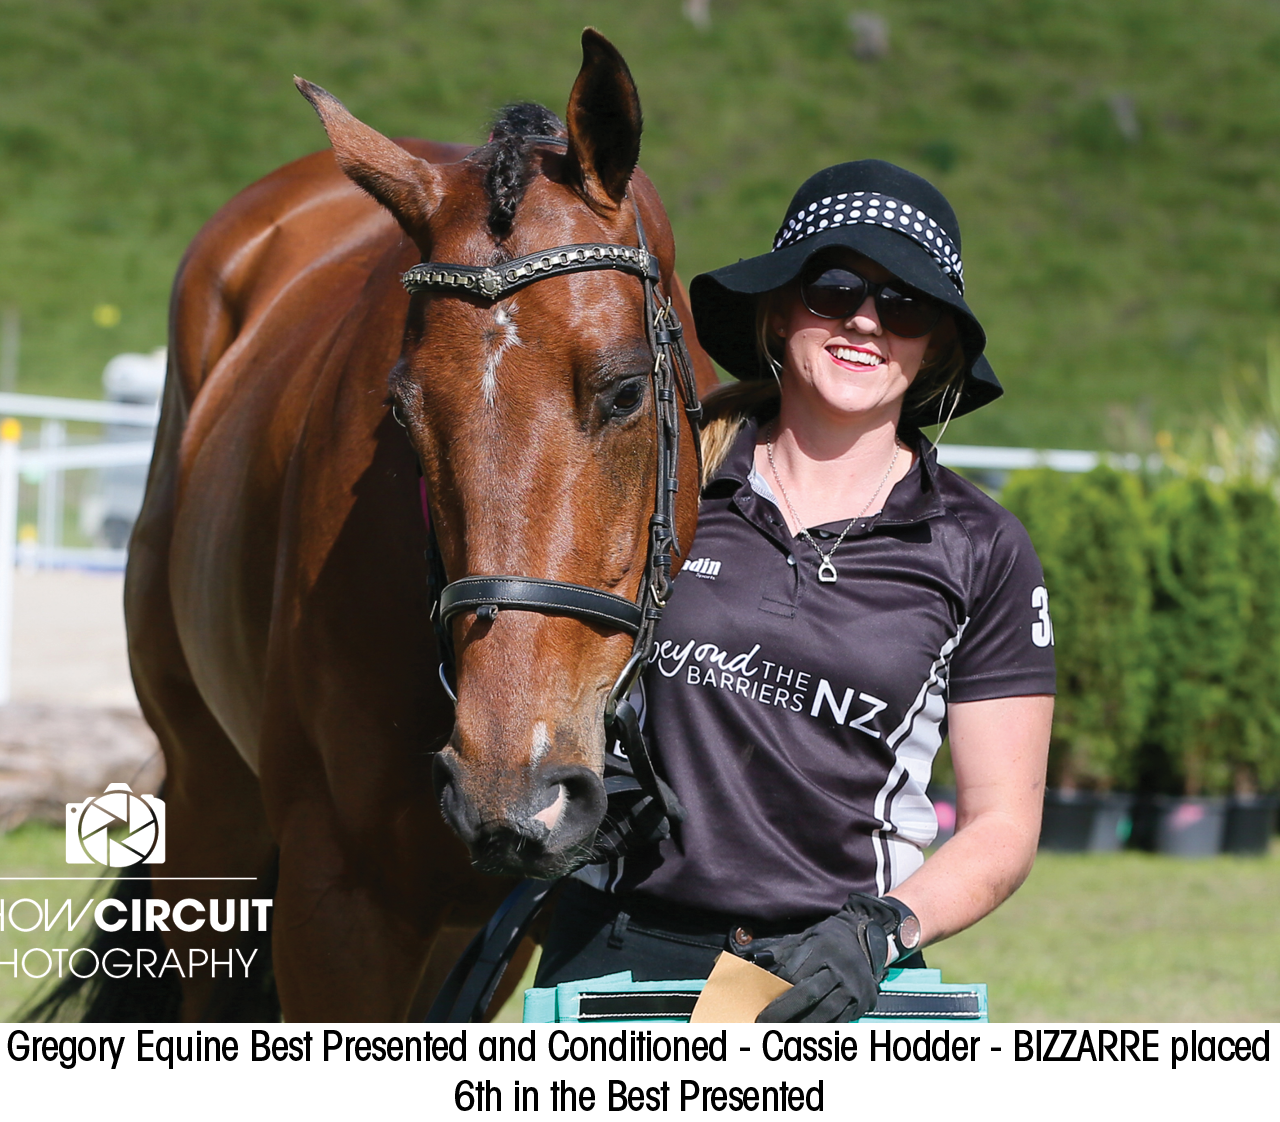 Gregory Equine Best Presented and Conditioned - Cassie Hodder - BIZZARRE placed  6th in the Best Presented